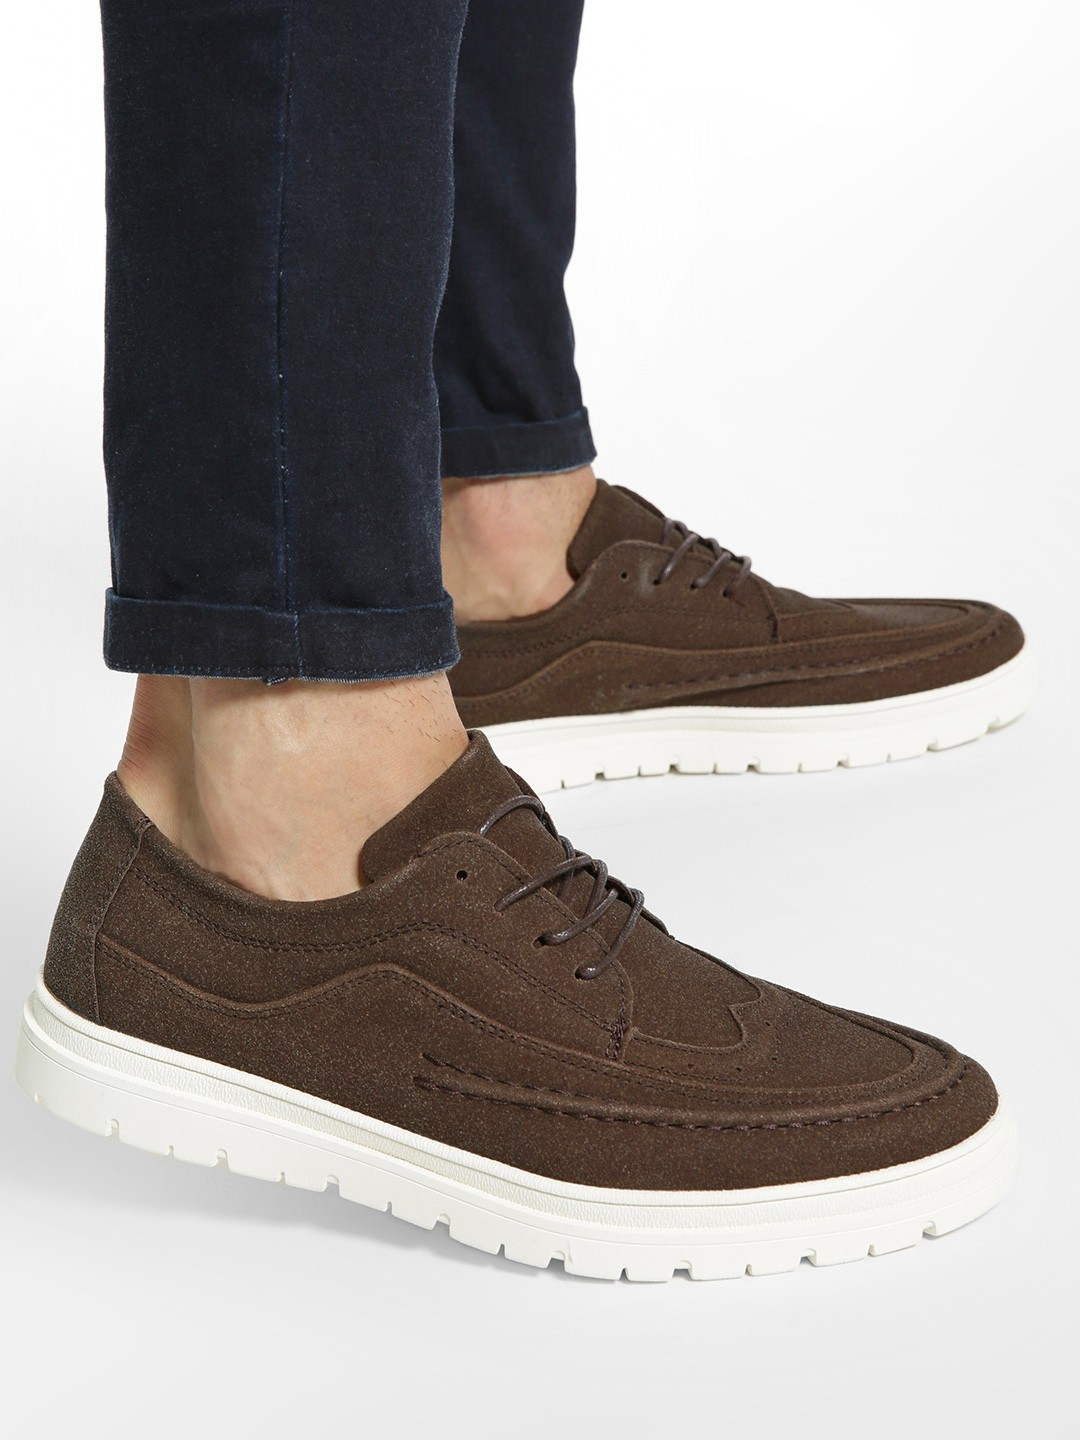 KOOVS Brown Brogue Punches Cleated Sole Shoes 1